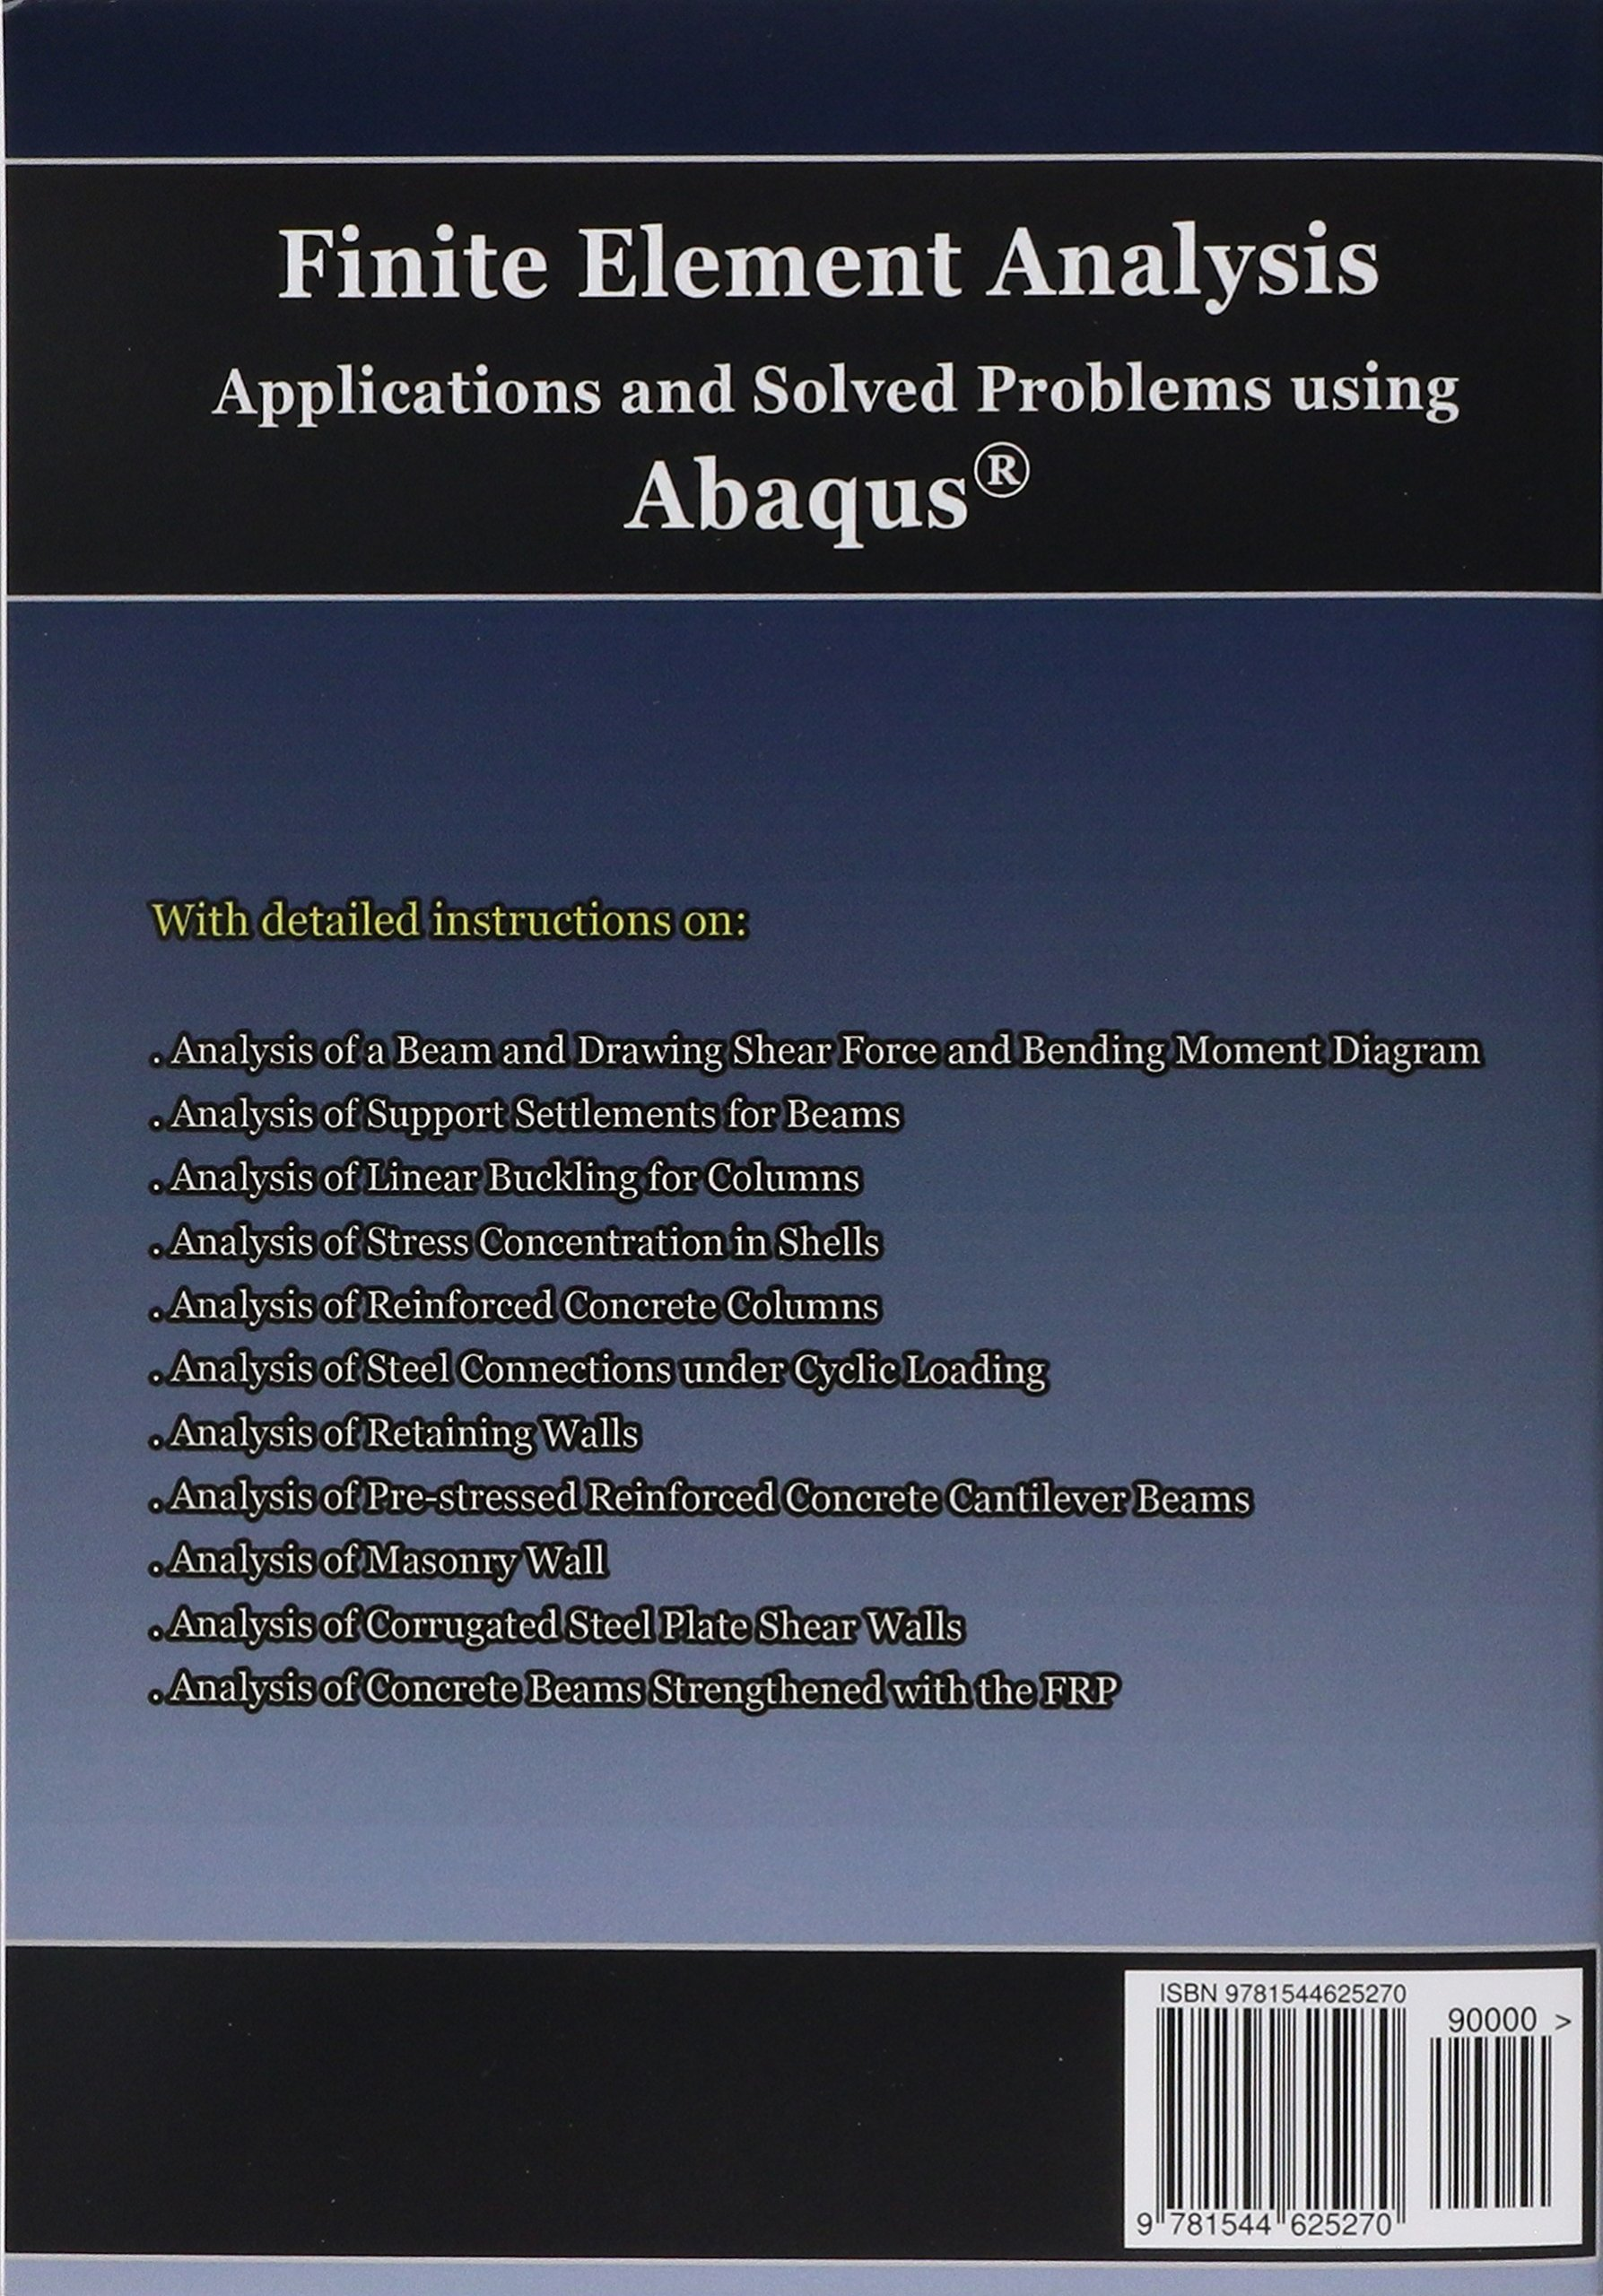 Finite Element Analysis Applications And Solved Problems Using For Accessibility Draw Shear Force Bending Moment Diagram Abaqus Hossein Ataei Phd Pe Mohammadhossein Mamaghani Eit 9781544625270